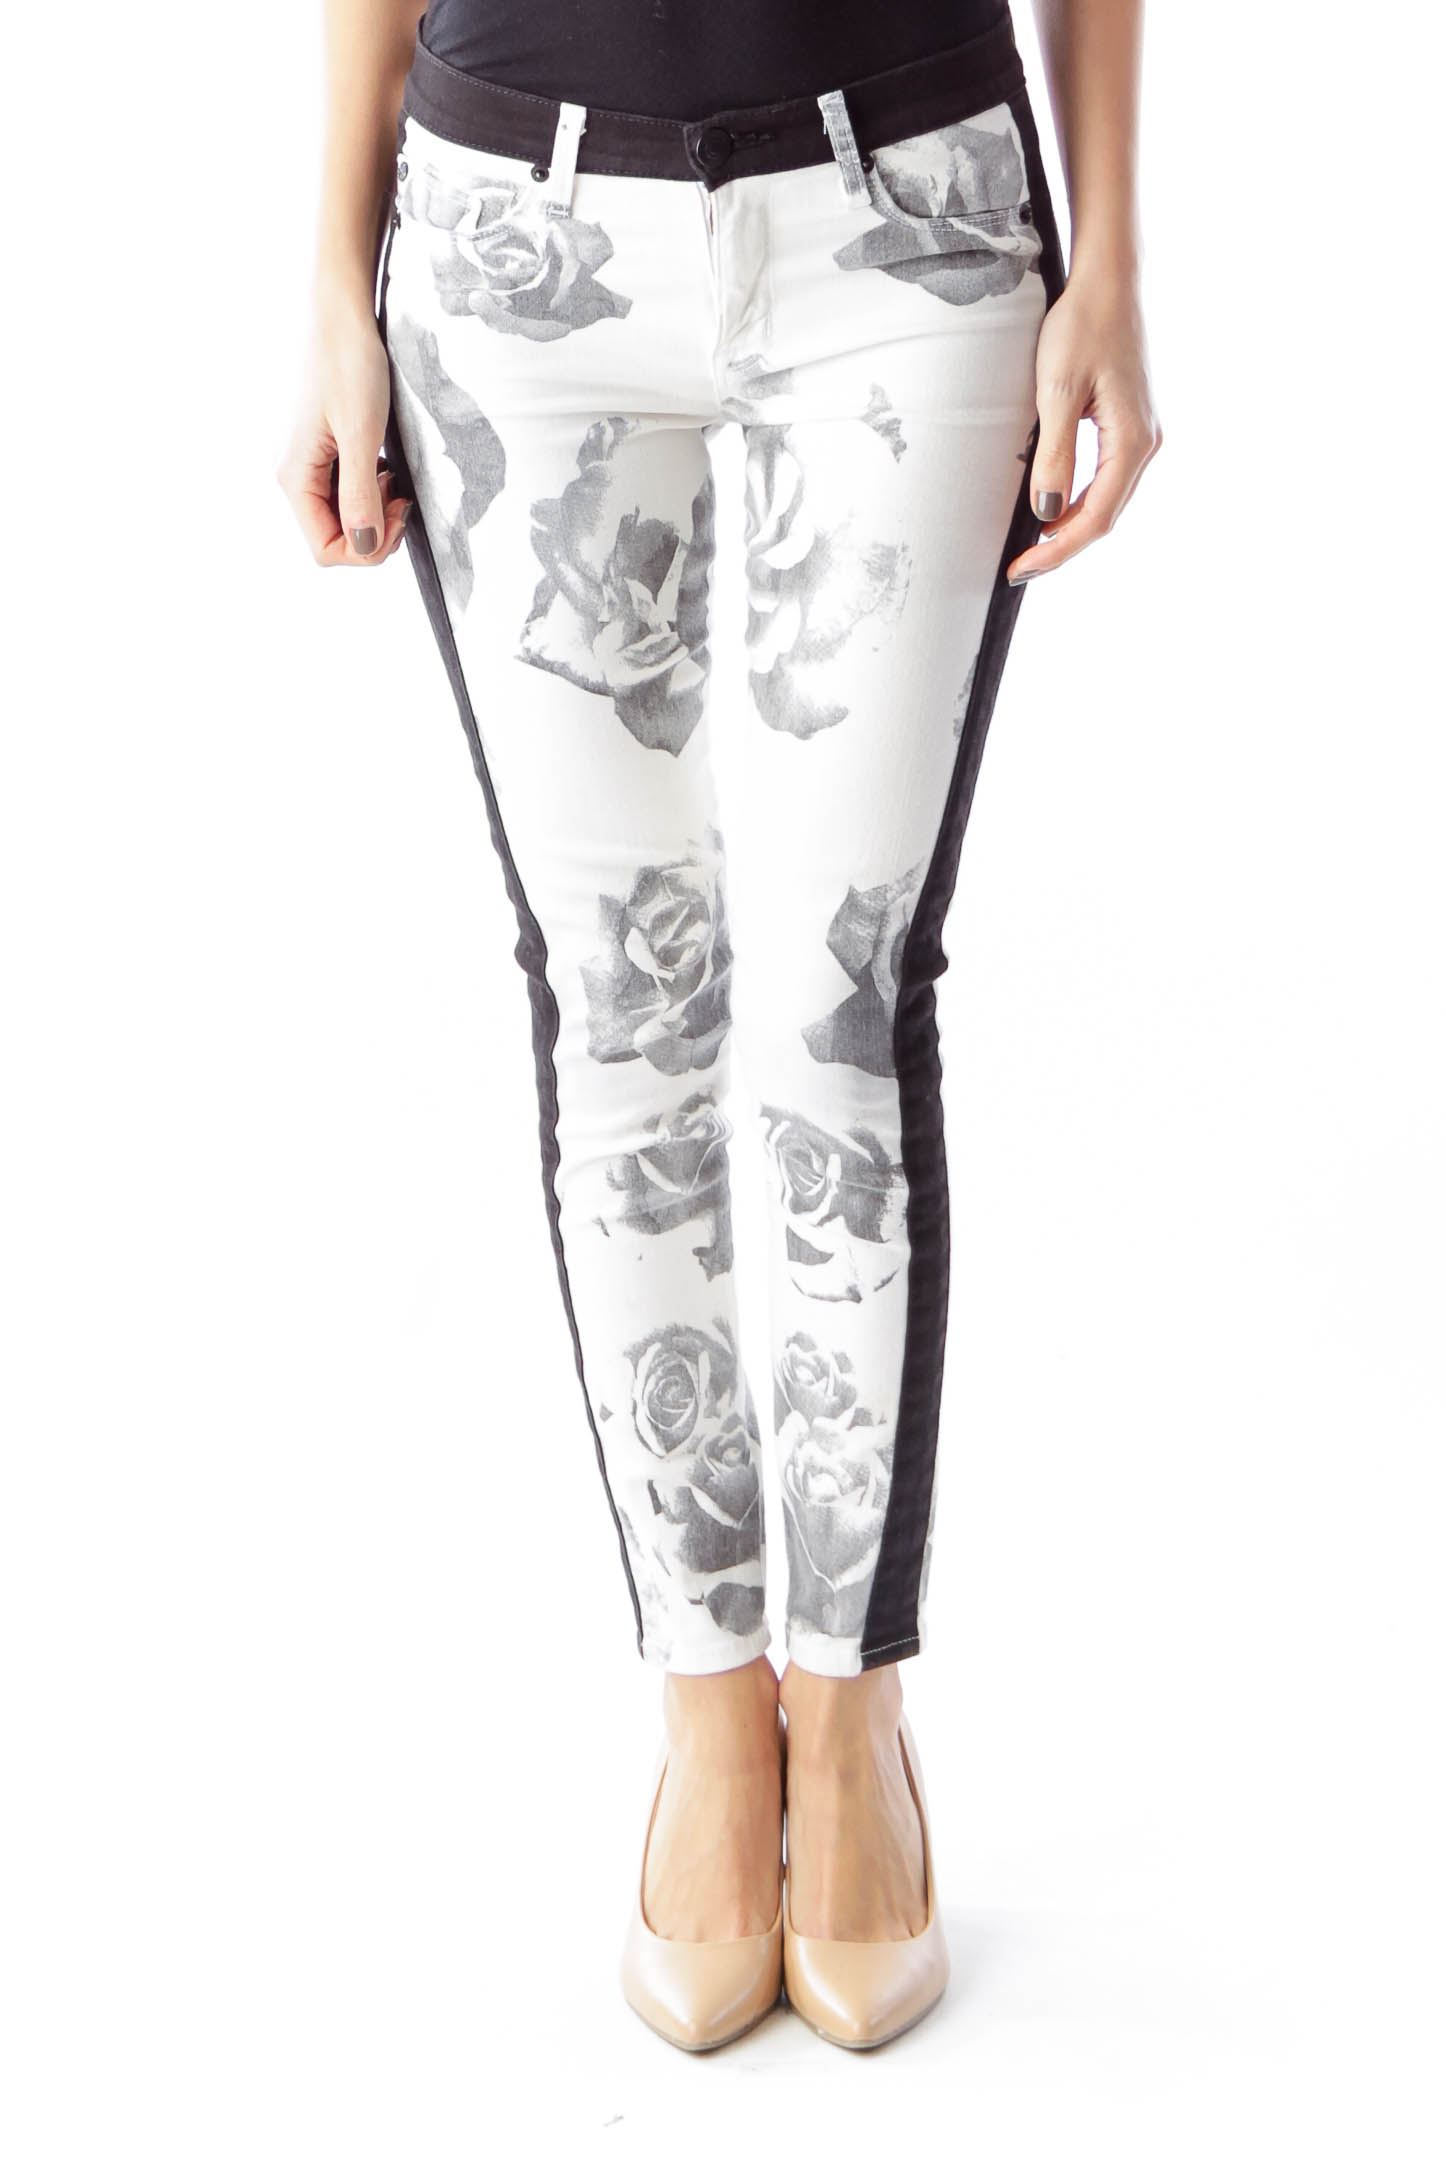 2019 year for lady- White and black floral skinny jeans